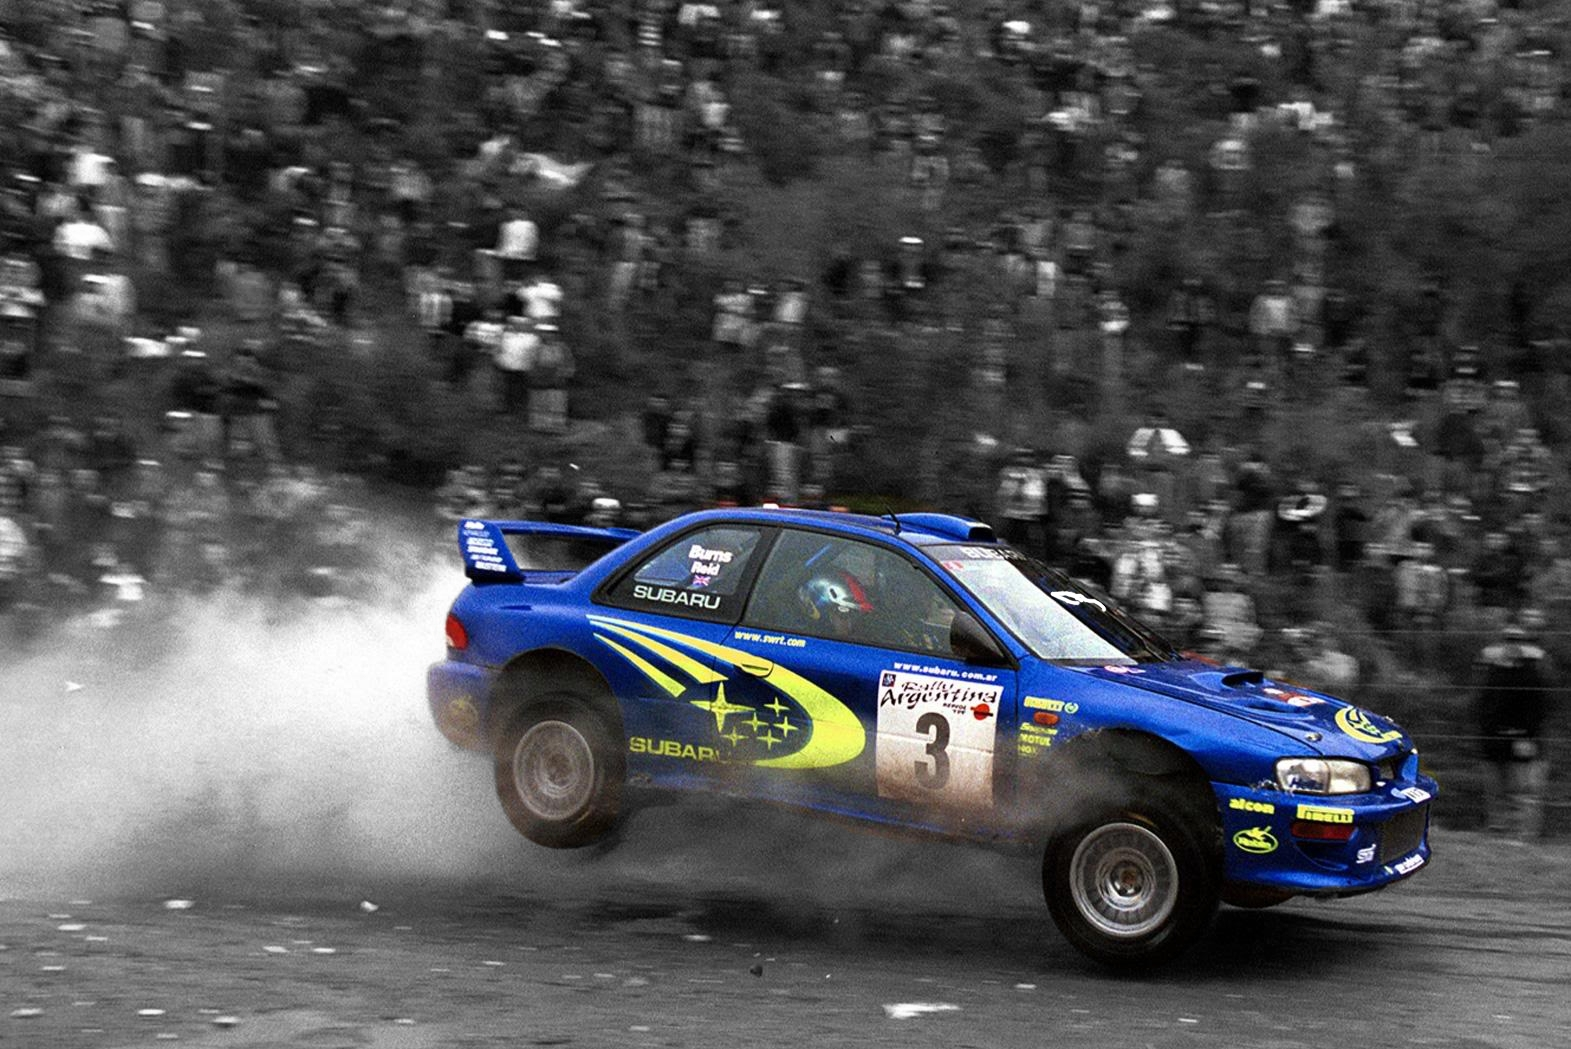 subaru impreza rally cars HD Wallpaper